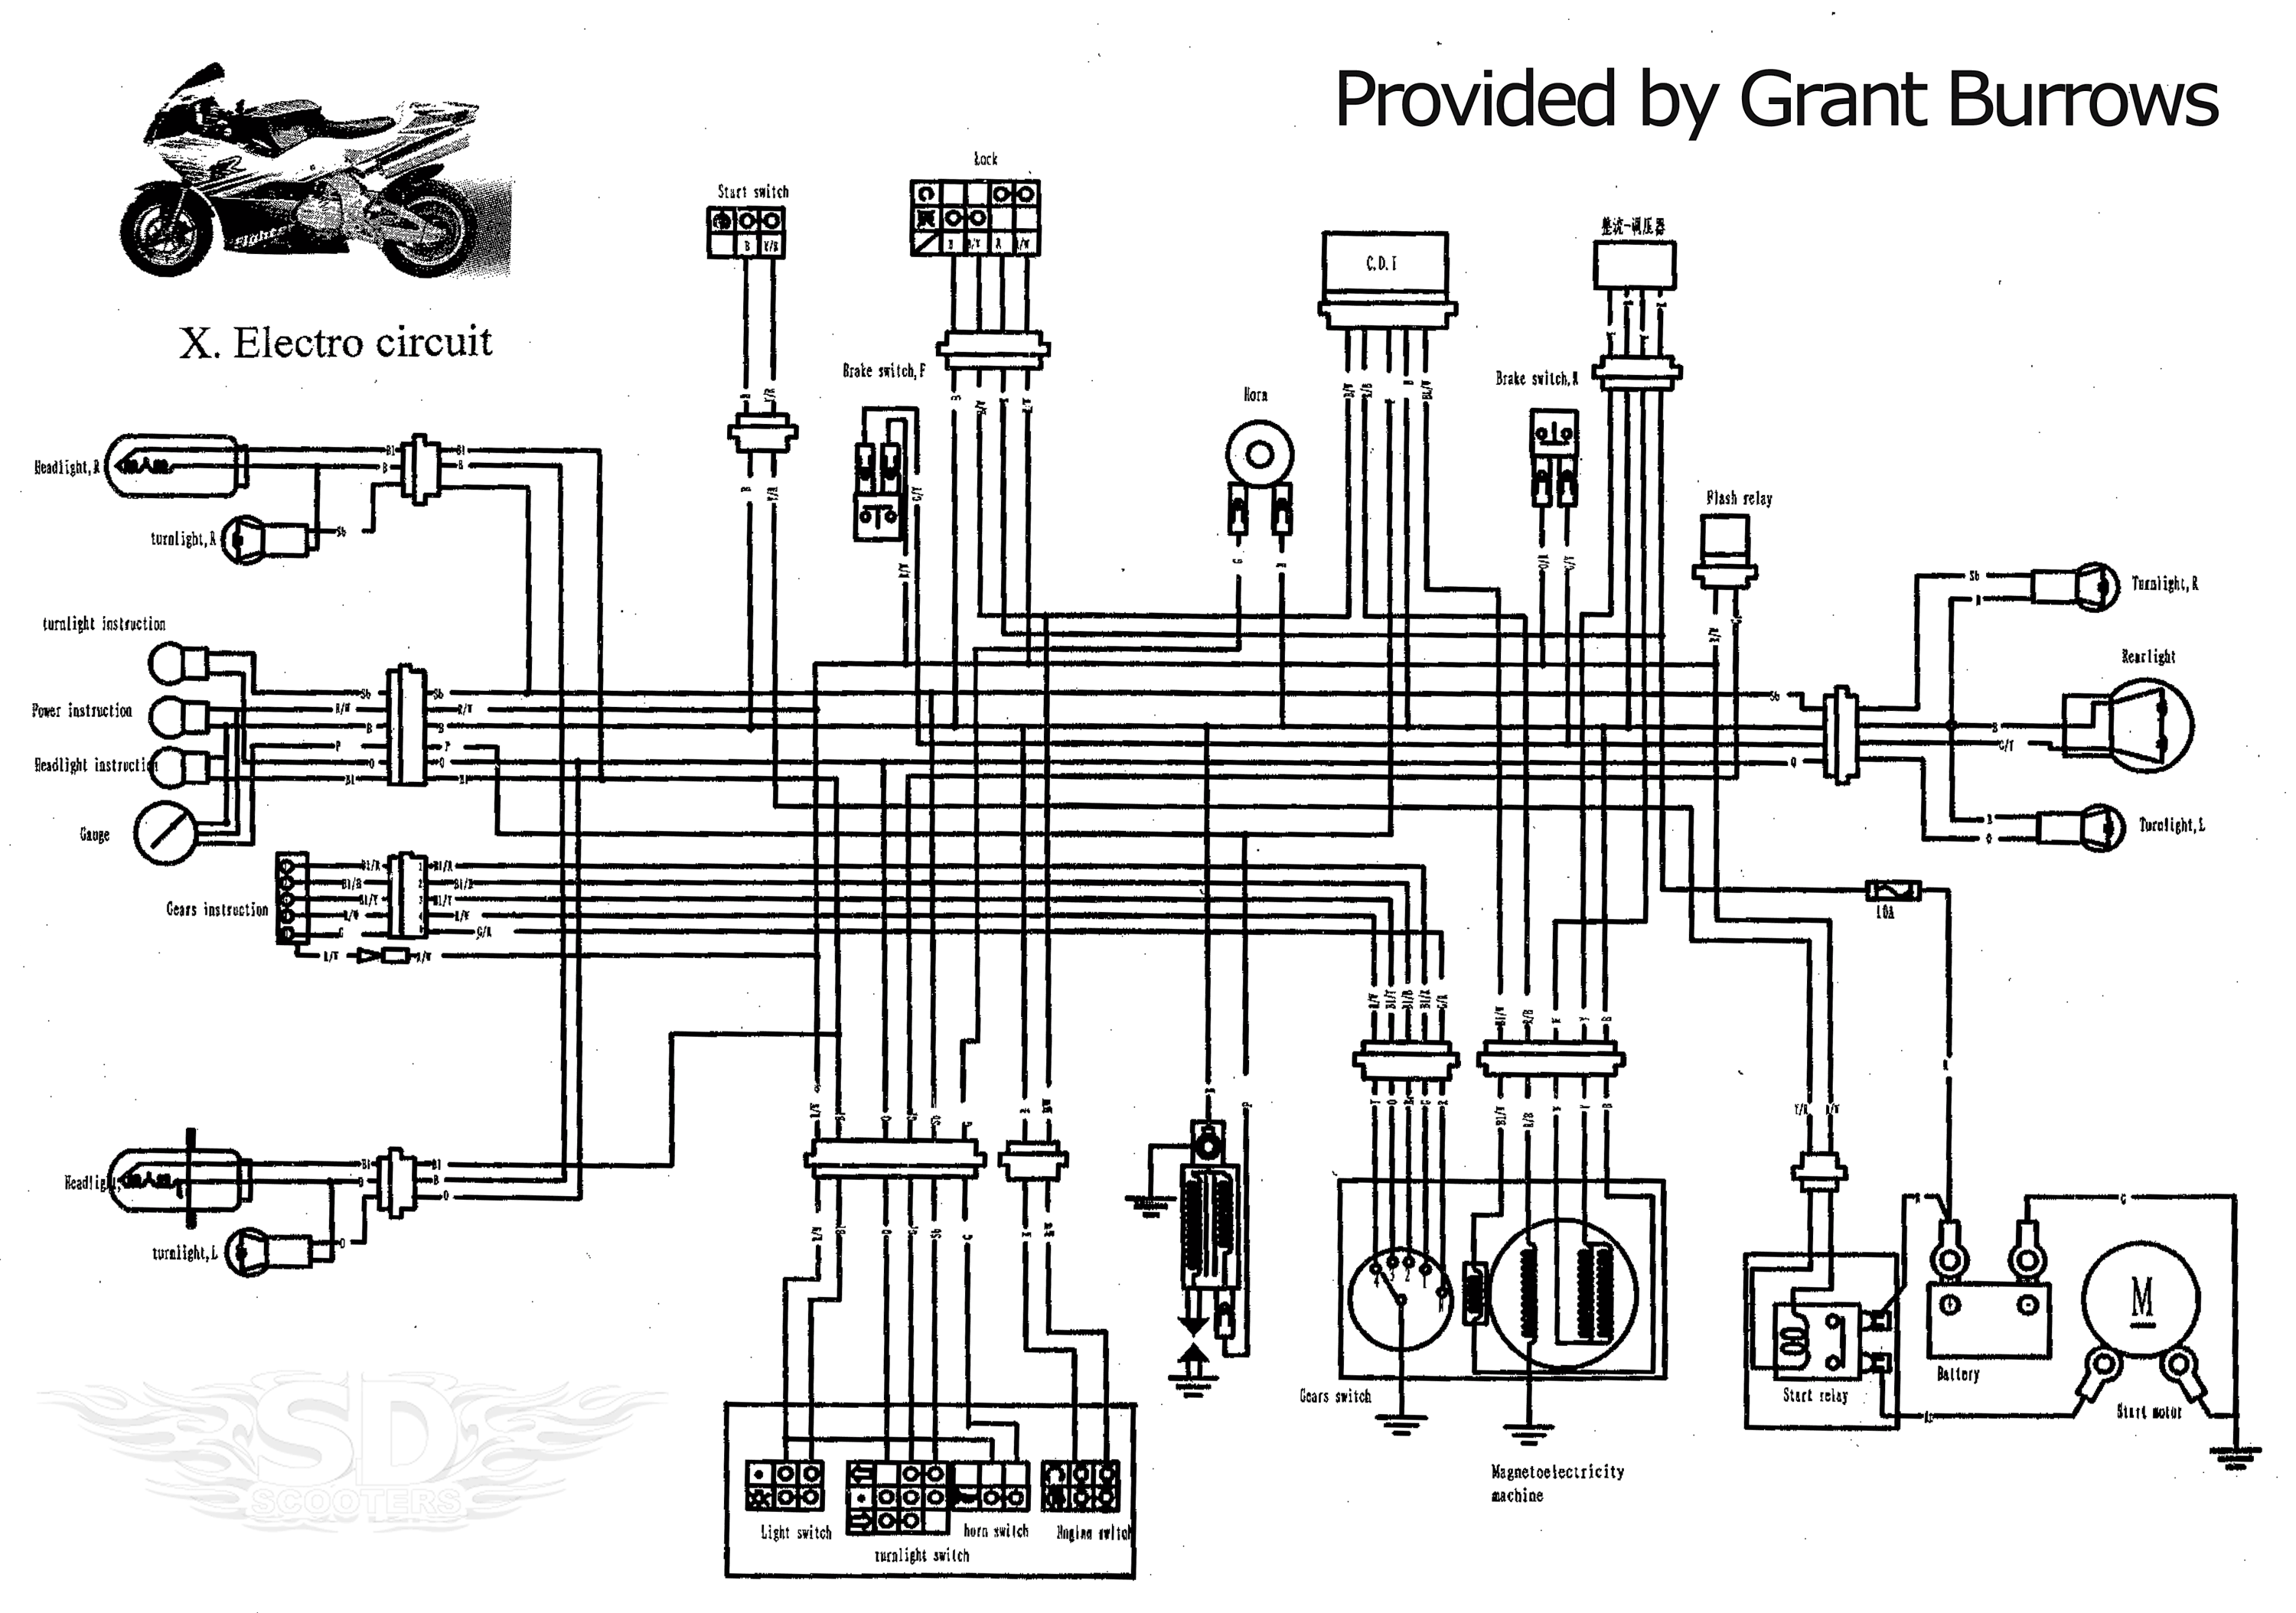 bike motor schematic diagram of motor repalcement parts and diagram